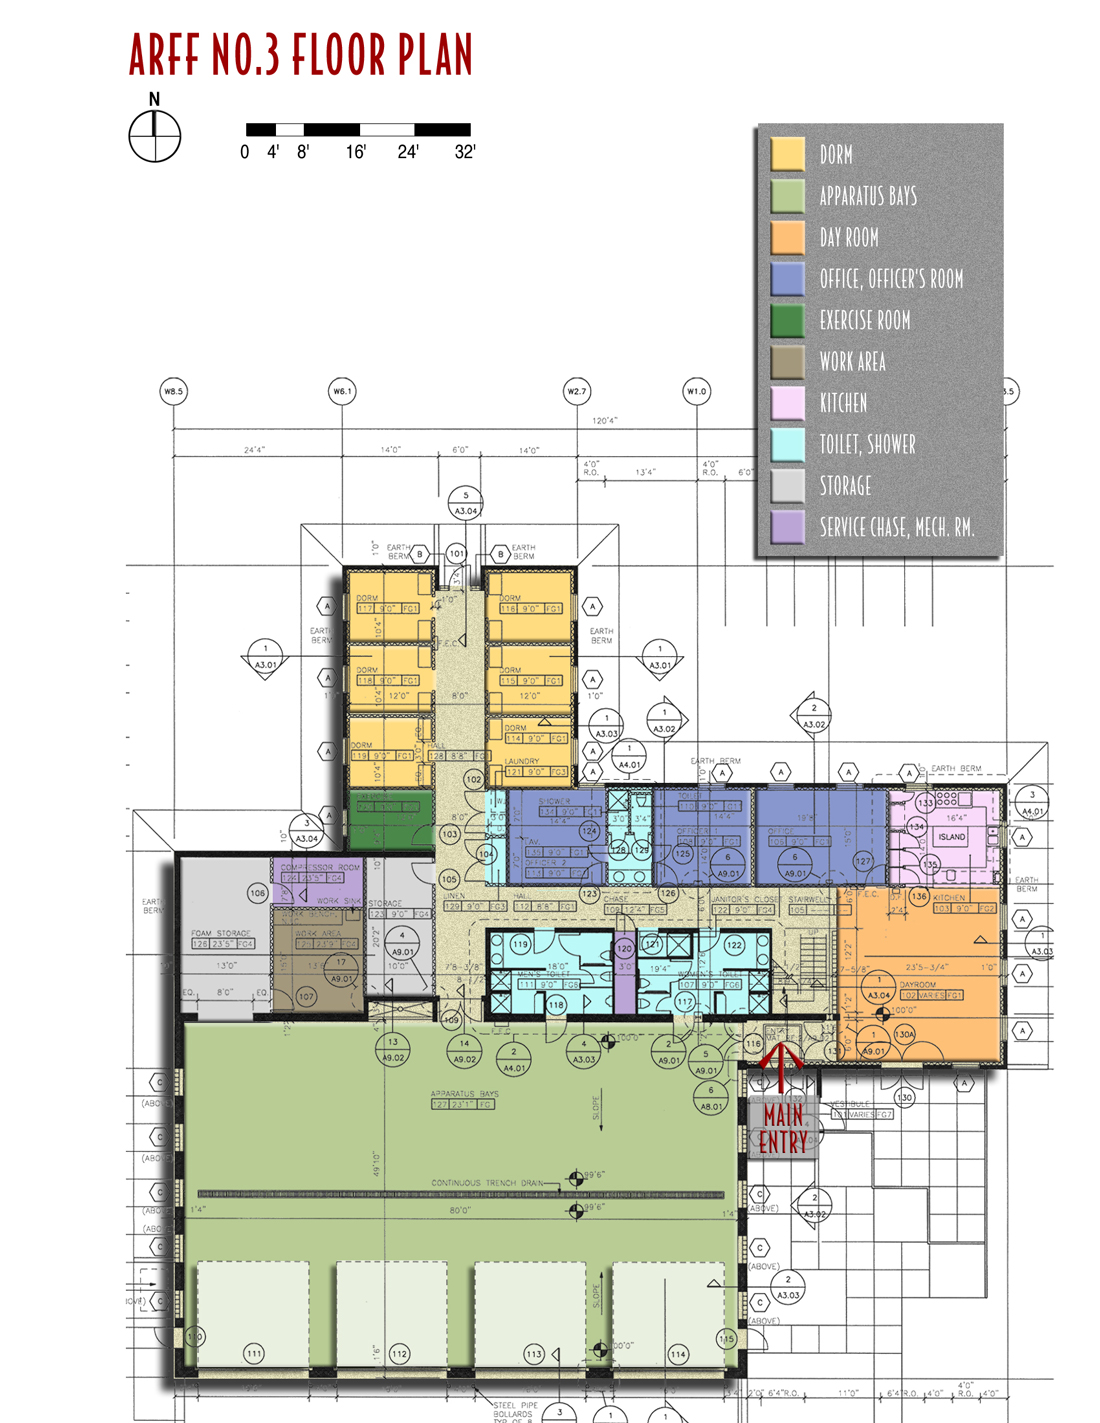 No. 3 Floor Plan